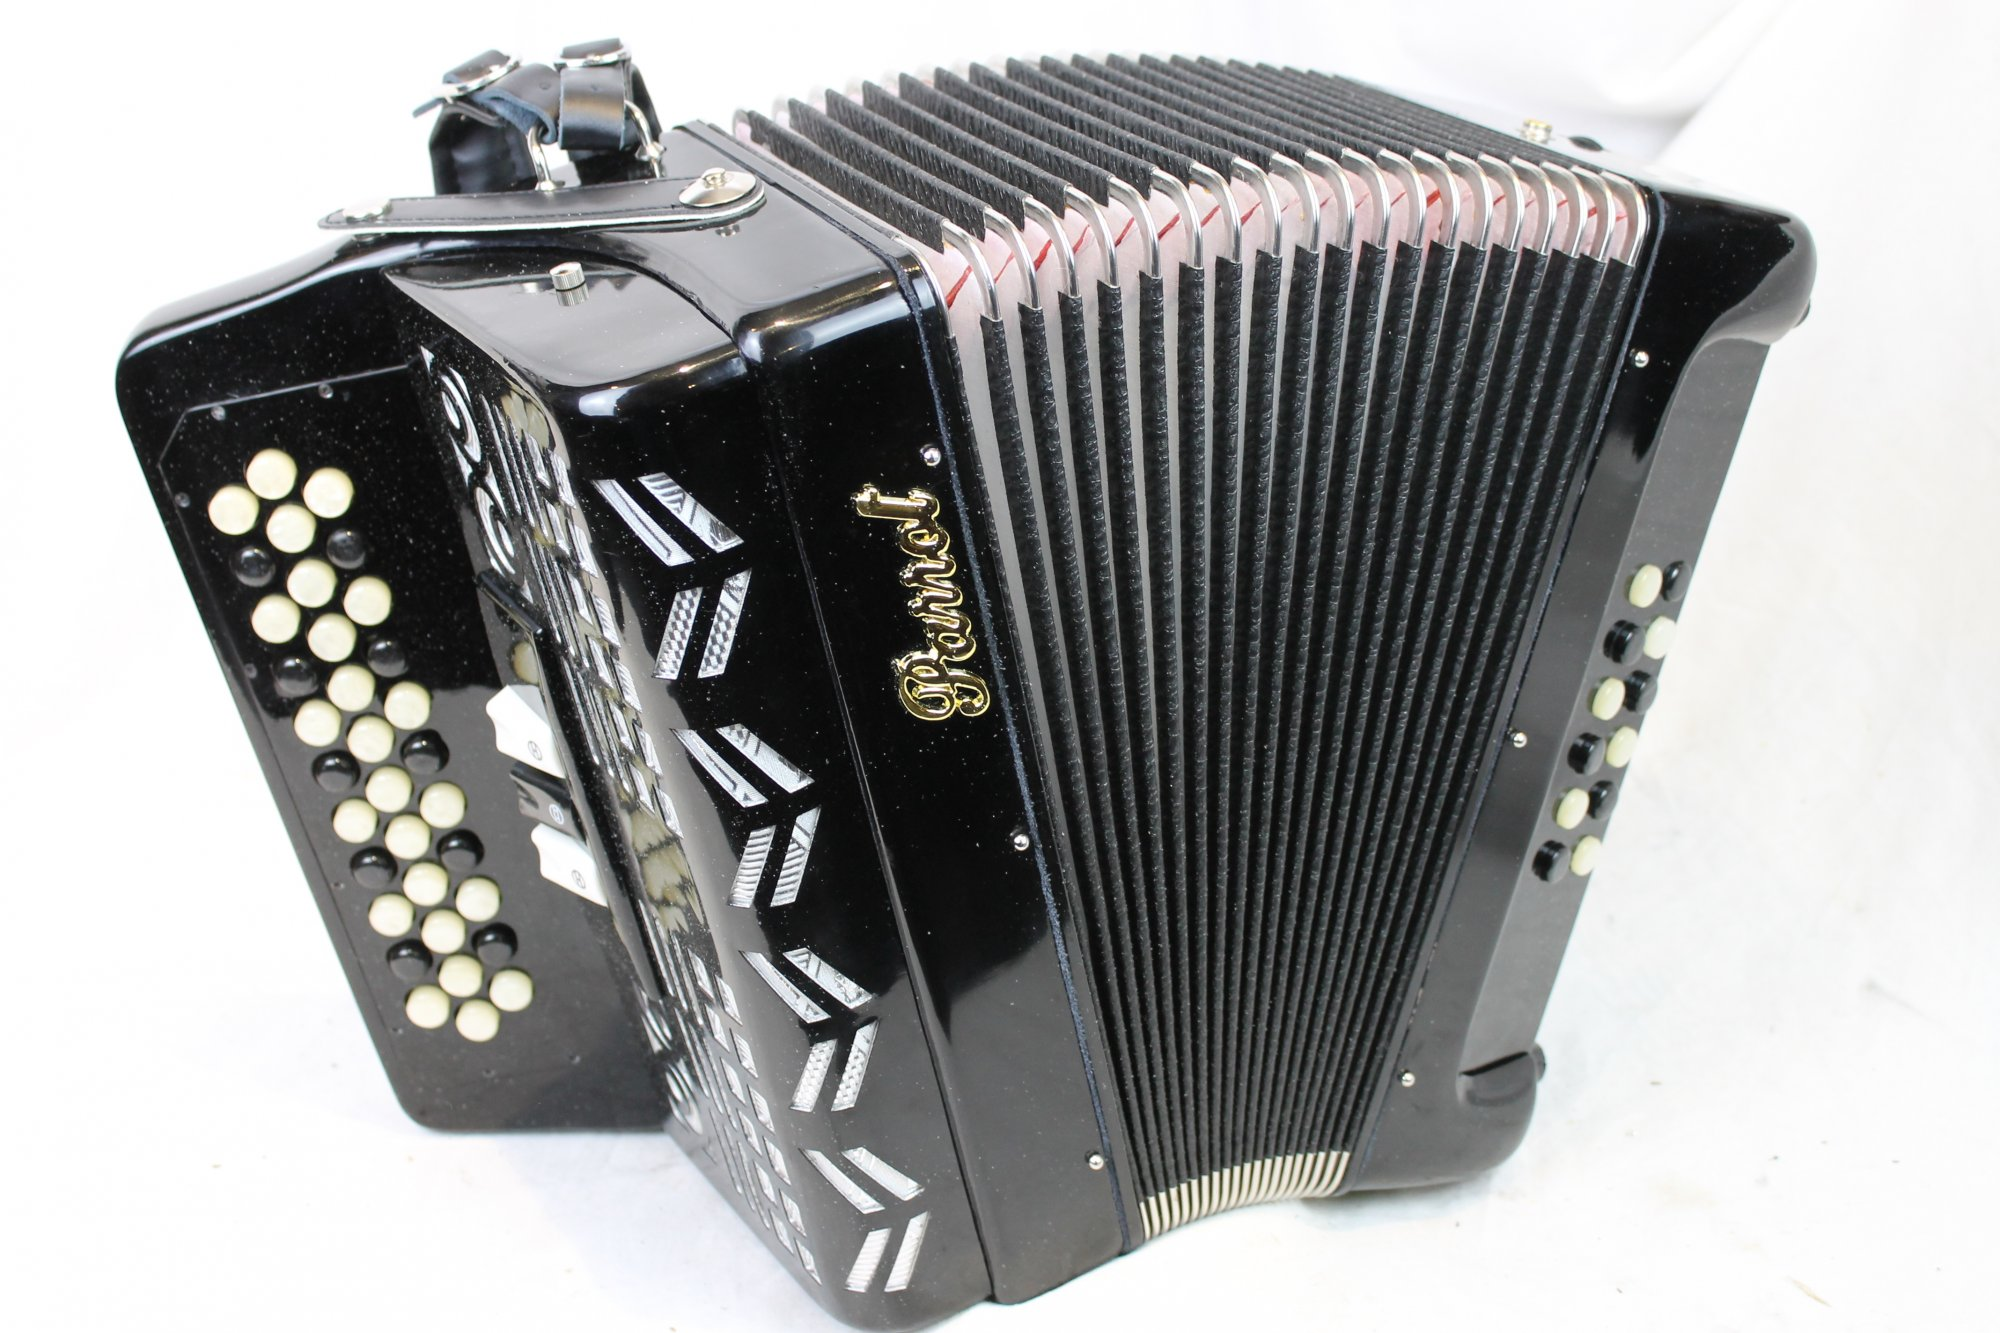 NEW Black Parrot Hawk Diatonic Button Accordion 3 Switch GCF Sol MM 34 12